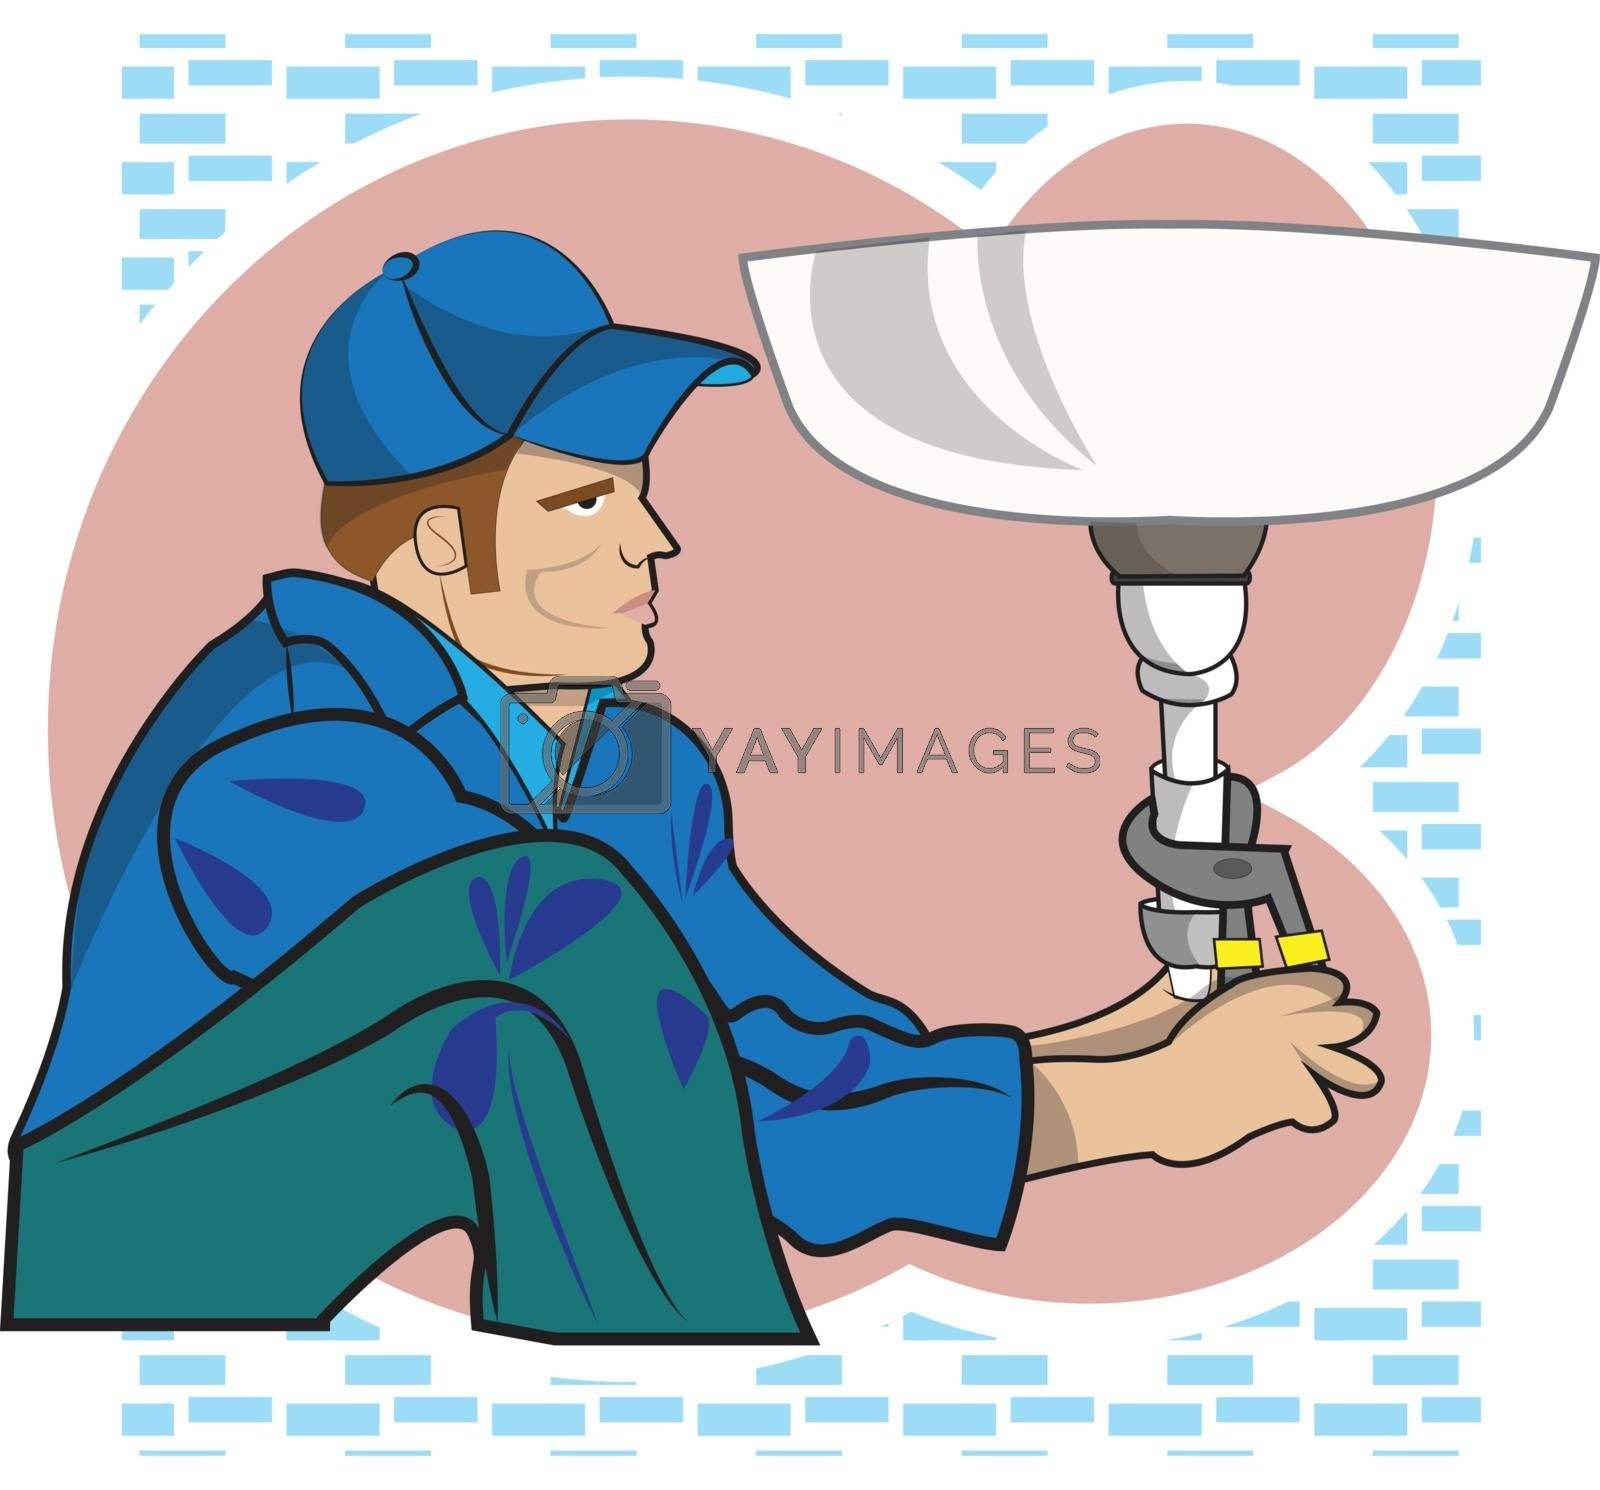 This illustration represents a plumber while working in a bathroom